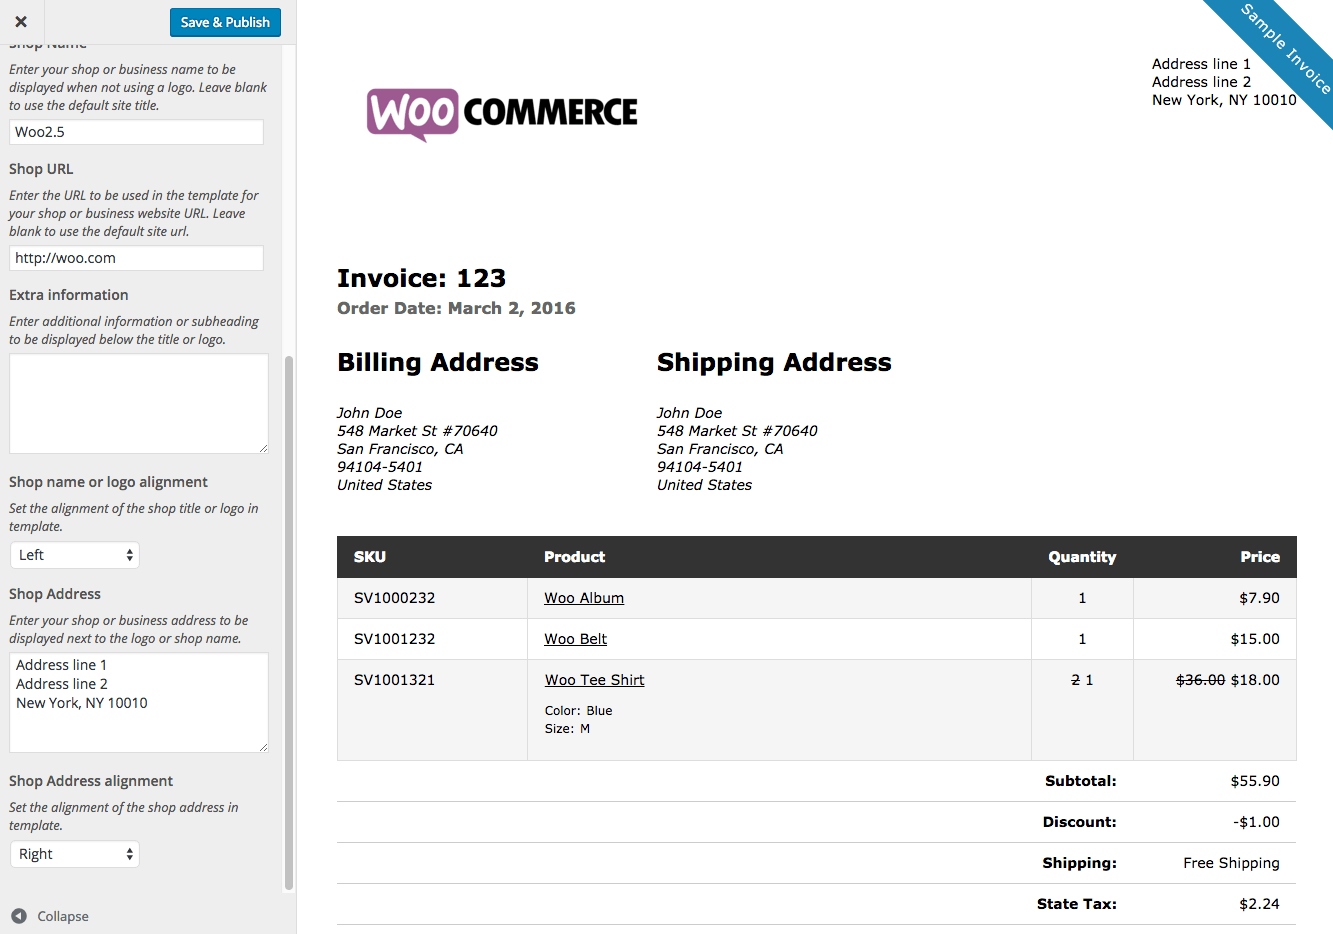 Carsforlessus  Marvellous Woocommerce Print Invoices Amp Packing Lists  Woocommerce Docs With Hot Woocommerce Print Invoices  Packing Lists Customizer With Nice How To Fill Out A Receipt Book Also Neat Receipts Software In Addition Read Receipt Outlook  And Thermal Receipt Paper As Well As Receipt Pronunciation Additionally Avis Toll Receipt From Docswoocommercecom With Carsforlessus  Hot Woocommerce Print Invoices Amp Packing Lists  Woocommerce Docs With Nice Woocommerce Print Invoices  Packing Lists Customizer And Marvellous How To Fill Out A Receipt Book Also Neat Receipts Software In Addition Read Receipt Outlook  From Docswoocommercecom